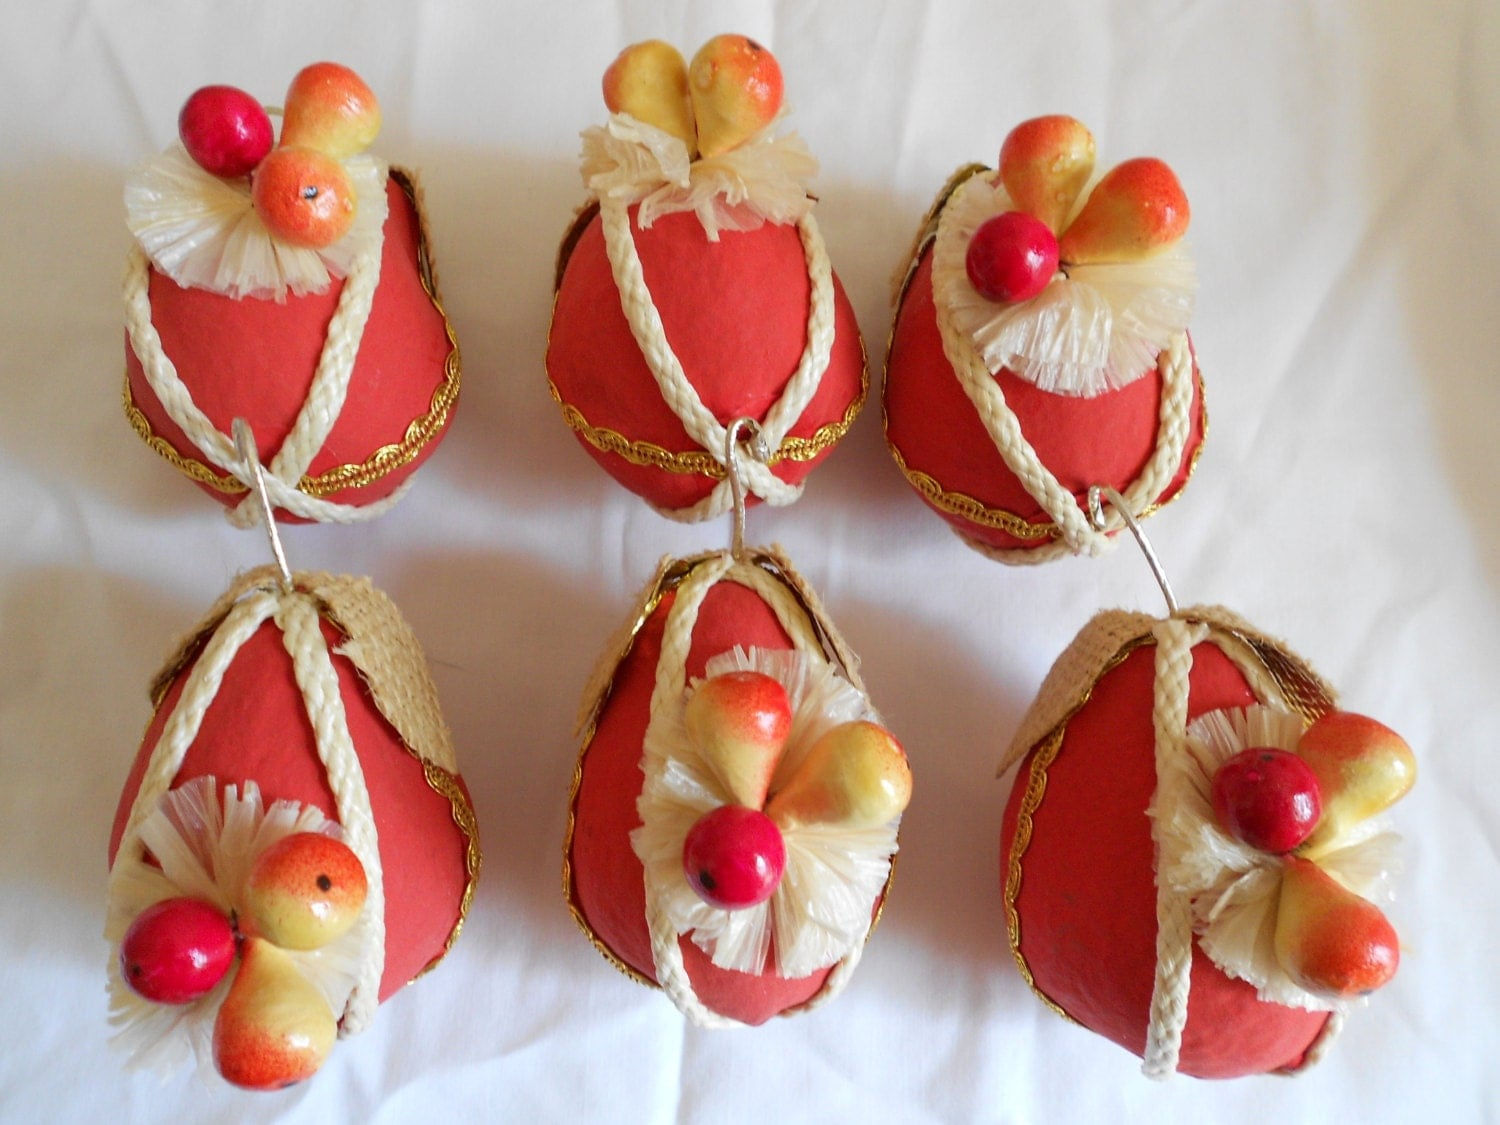 Papier Mache Eggs from Germany - Vintage Ornaments